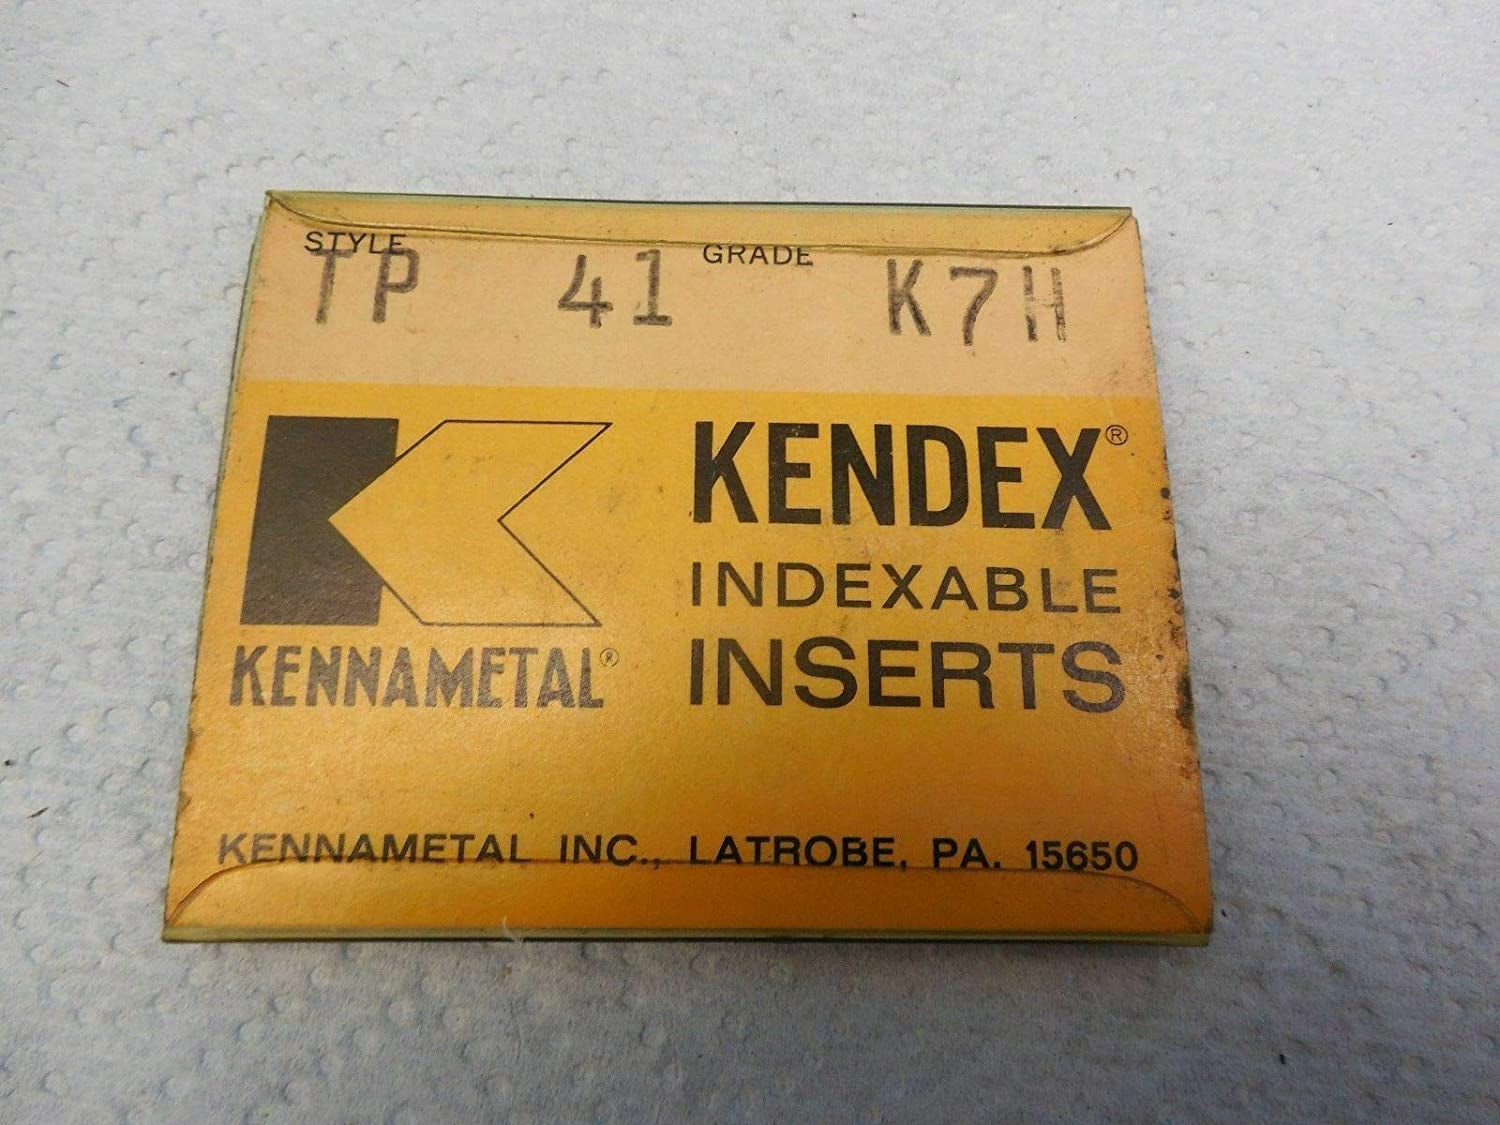 5PCS NEW KENNAMETAL TP 41 K7H KENDEX INDEXABLE INSERTS METALWORKING TOOLING USA